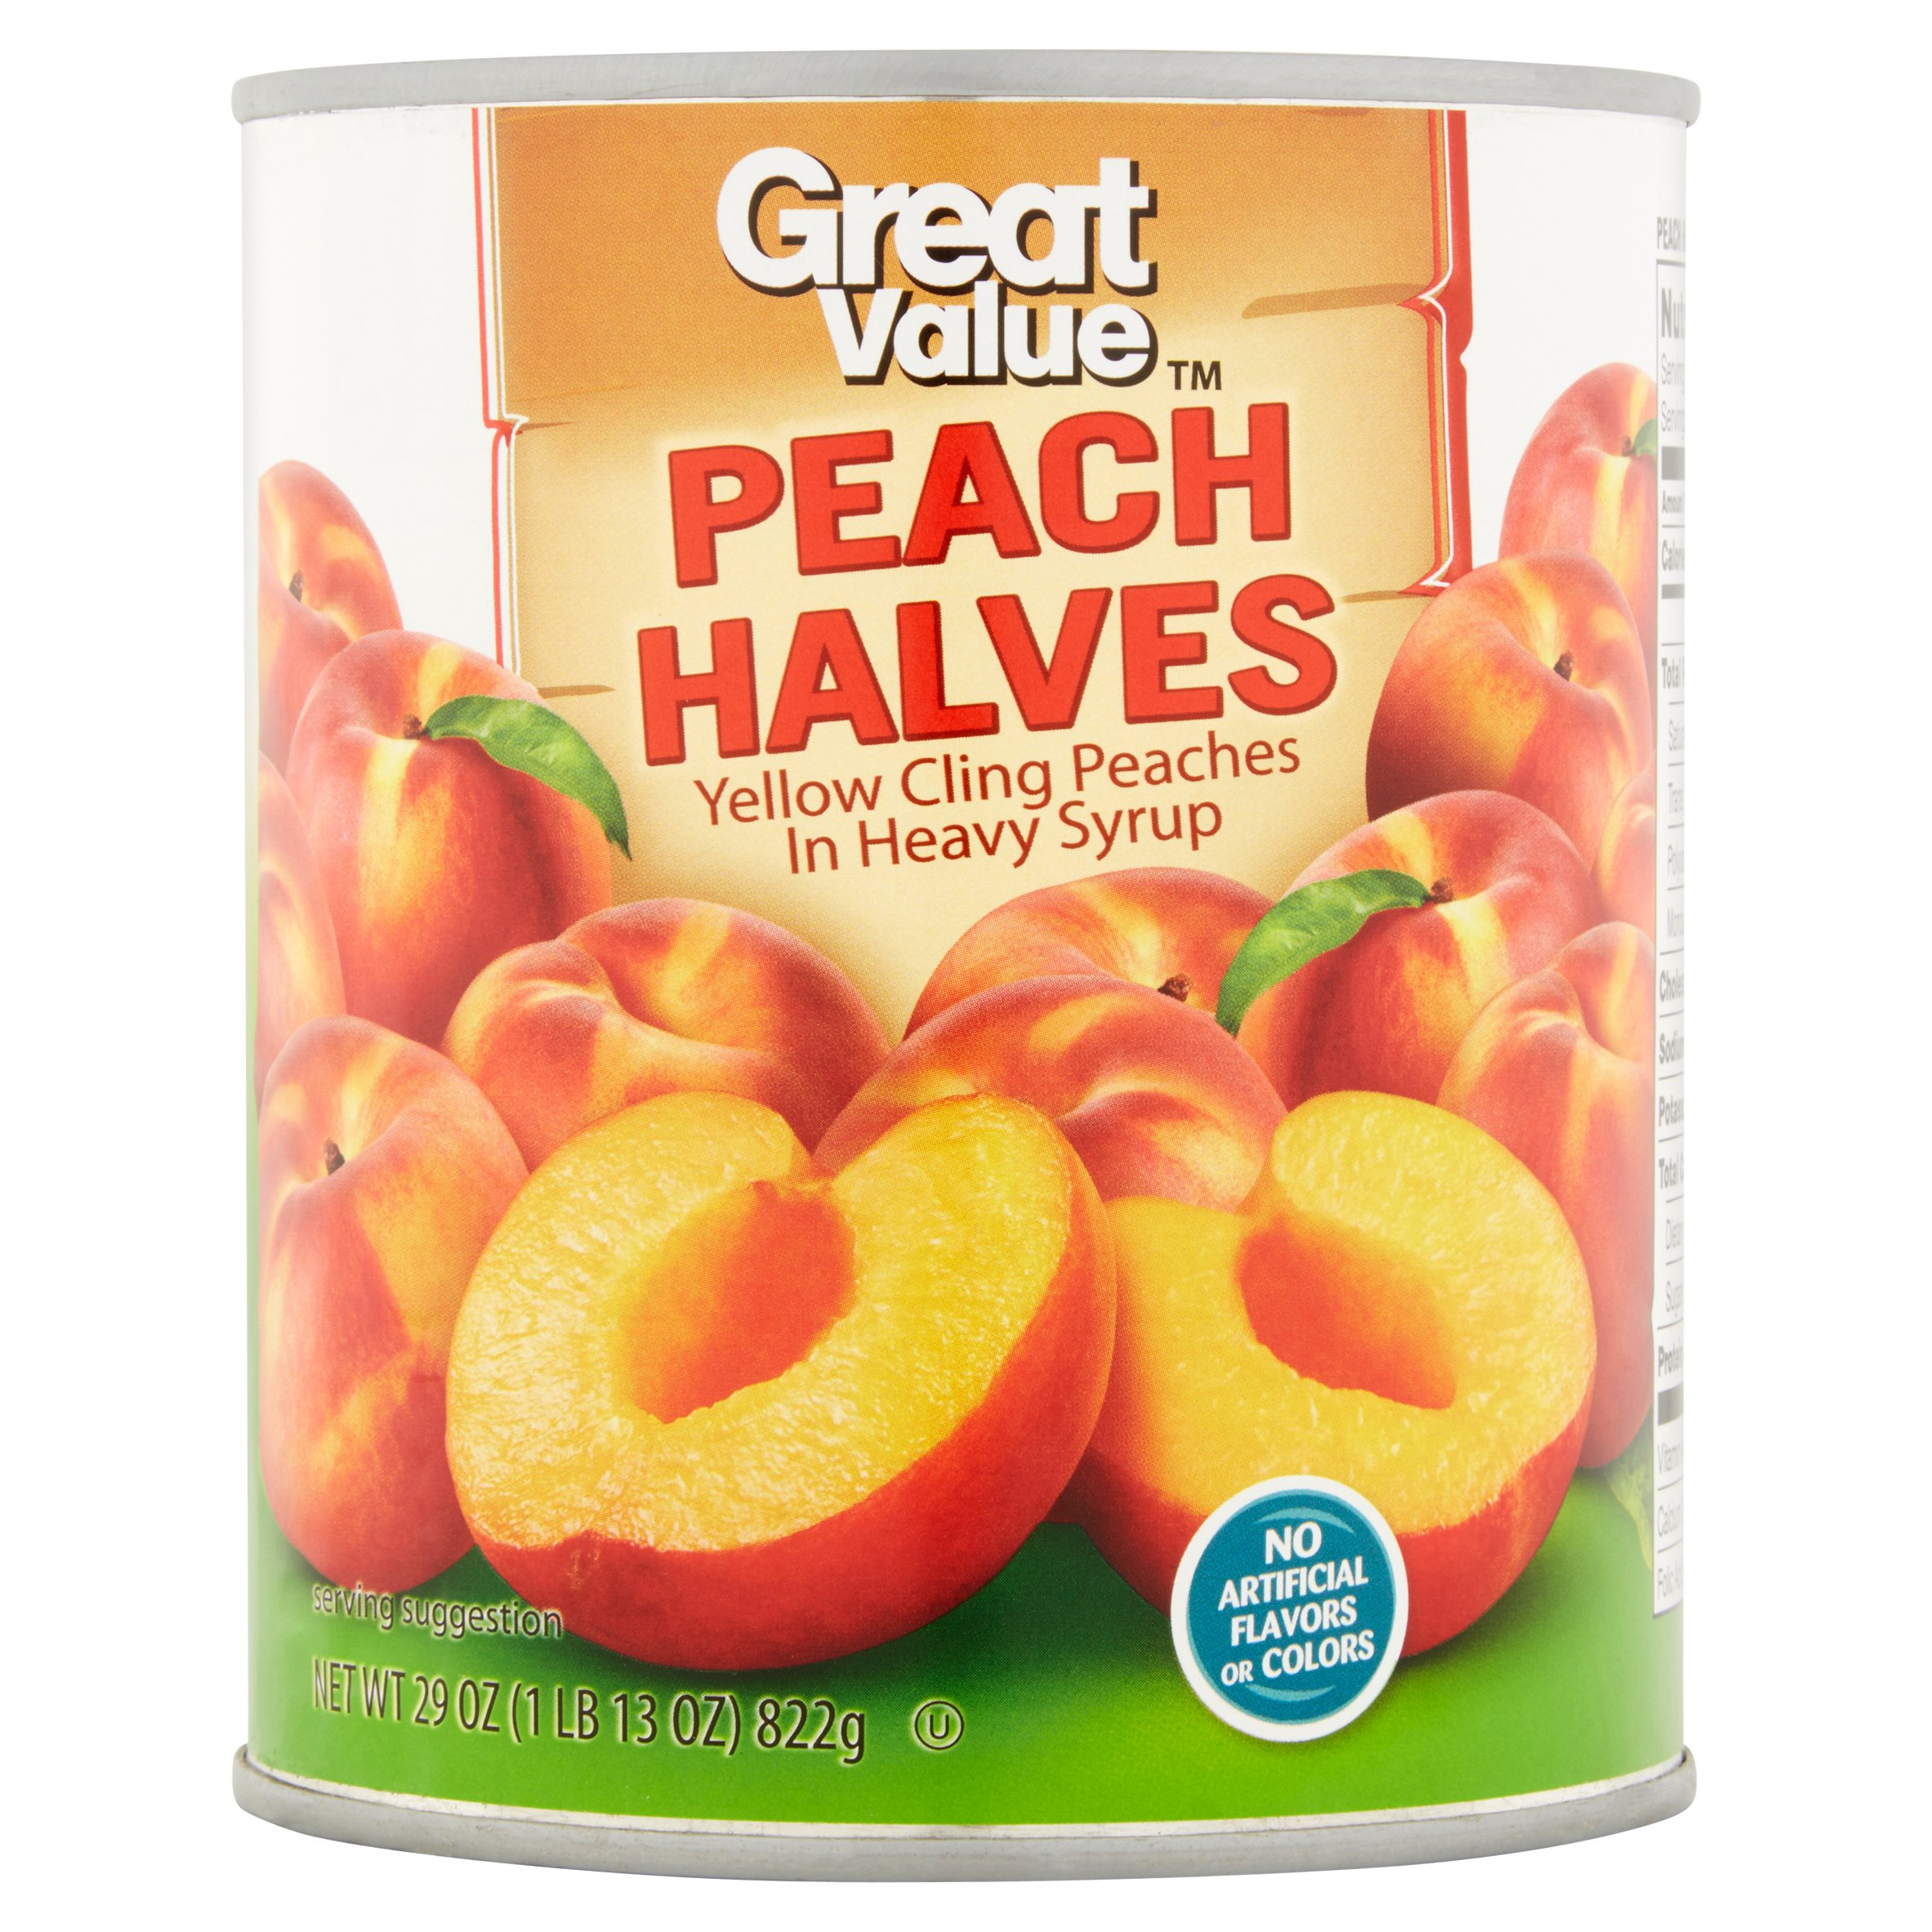 Great Value Peach Halves In Heavy Syrup, 29 Oz